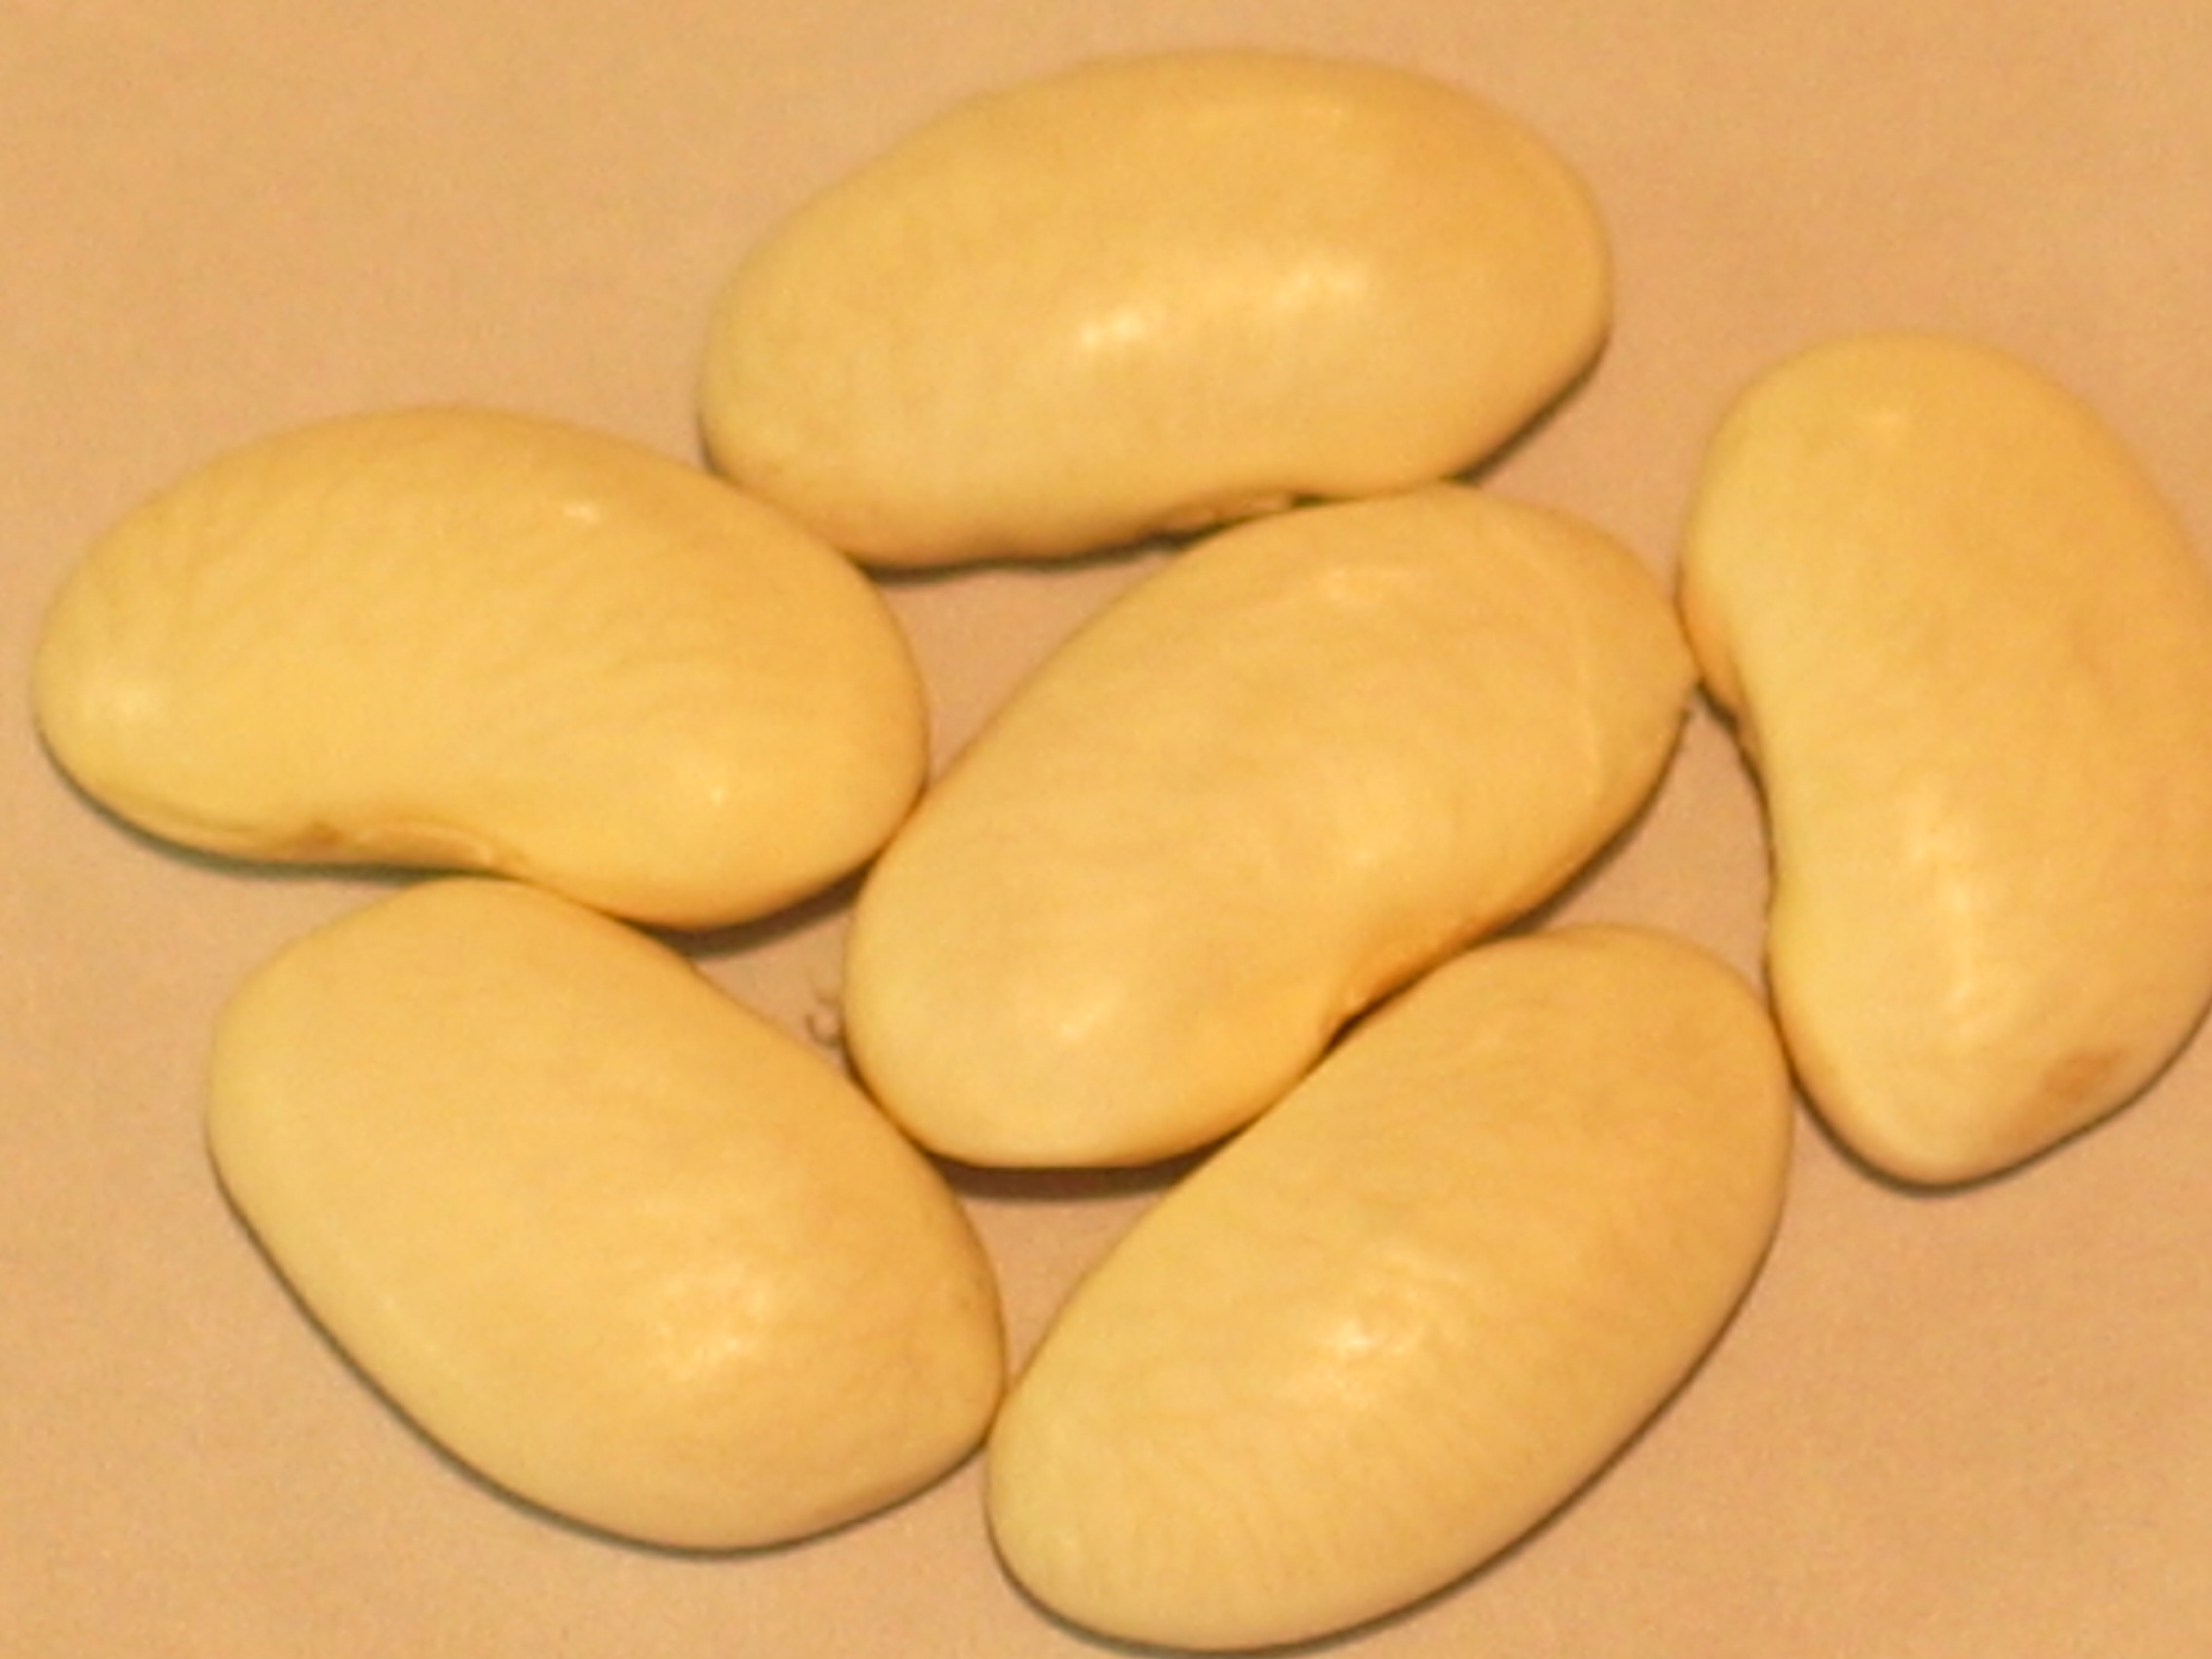 image of Harvey's White Haricot beans